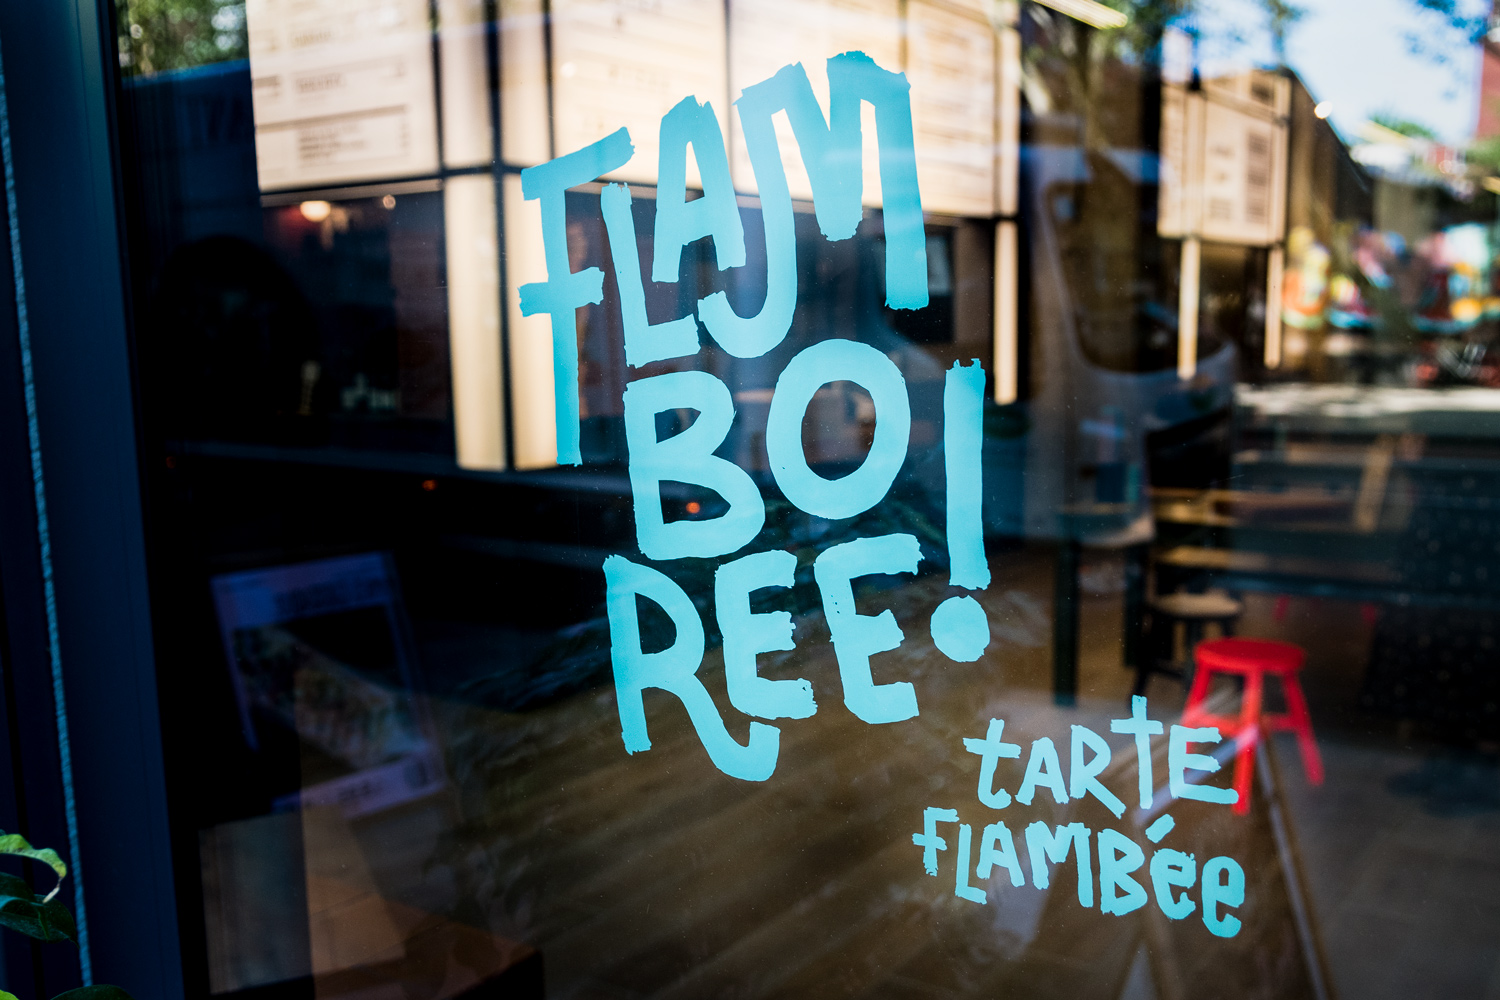 Signwriting in blue of the Flamboree logo onto glass with the restaurant interiors seen in the background.